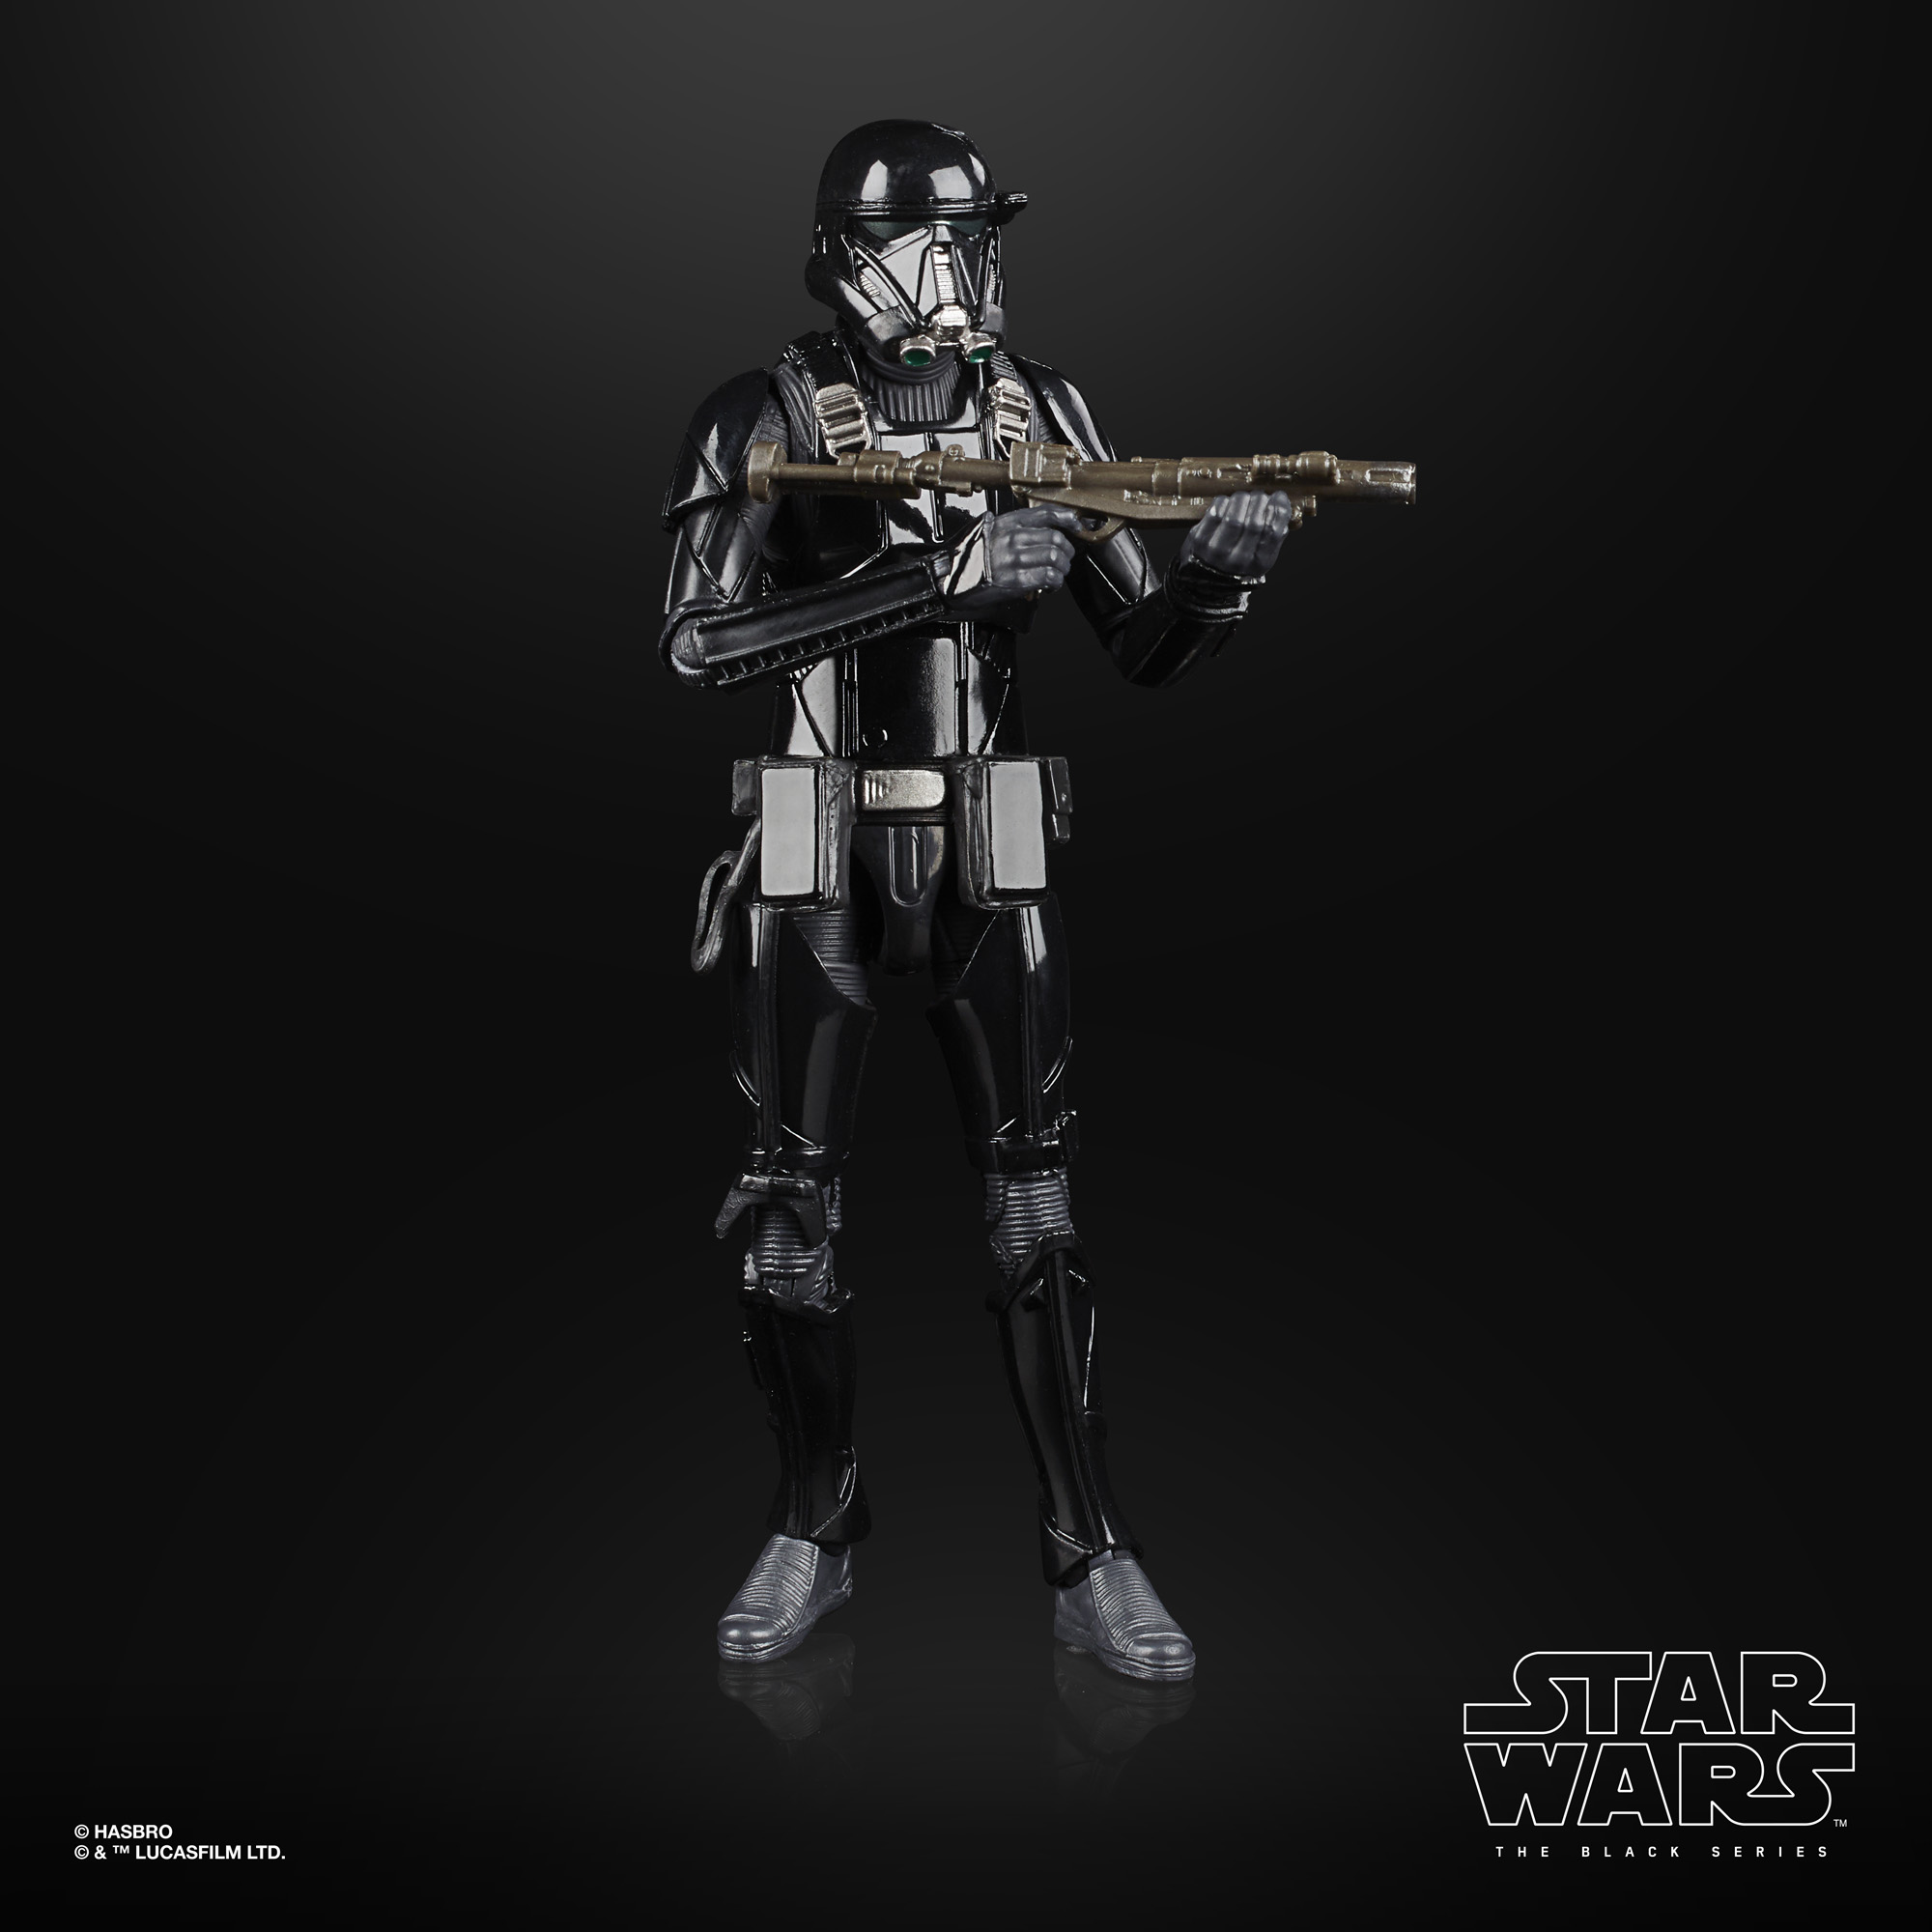 Star Wars The Black Series Archive Line Archive Imperial Death Trooper 15cm F19075L00 5010993825417